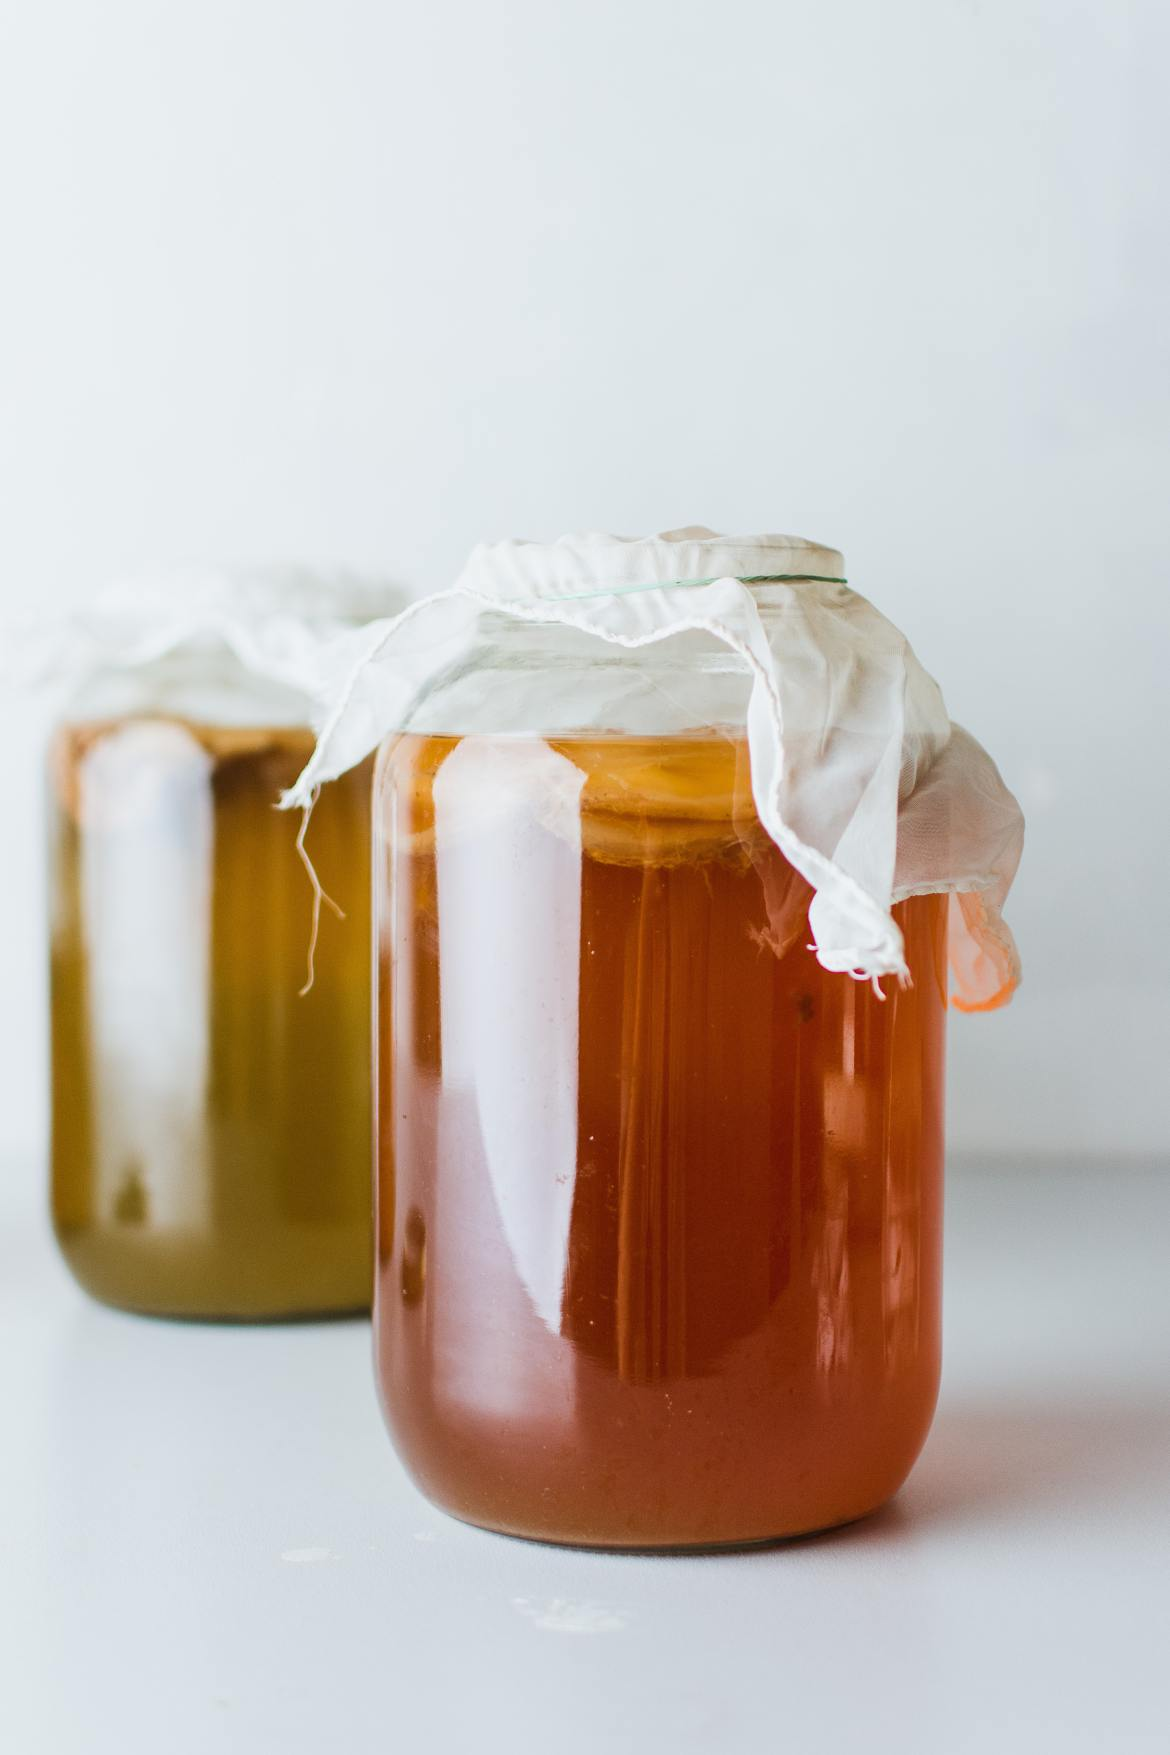 Lining the aisle in your local health food stores and farmers' markets, is none other than the fermented tea known as Kombucha. It is well-loved by celebrities and health nuts alike, but why?